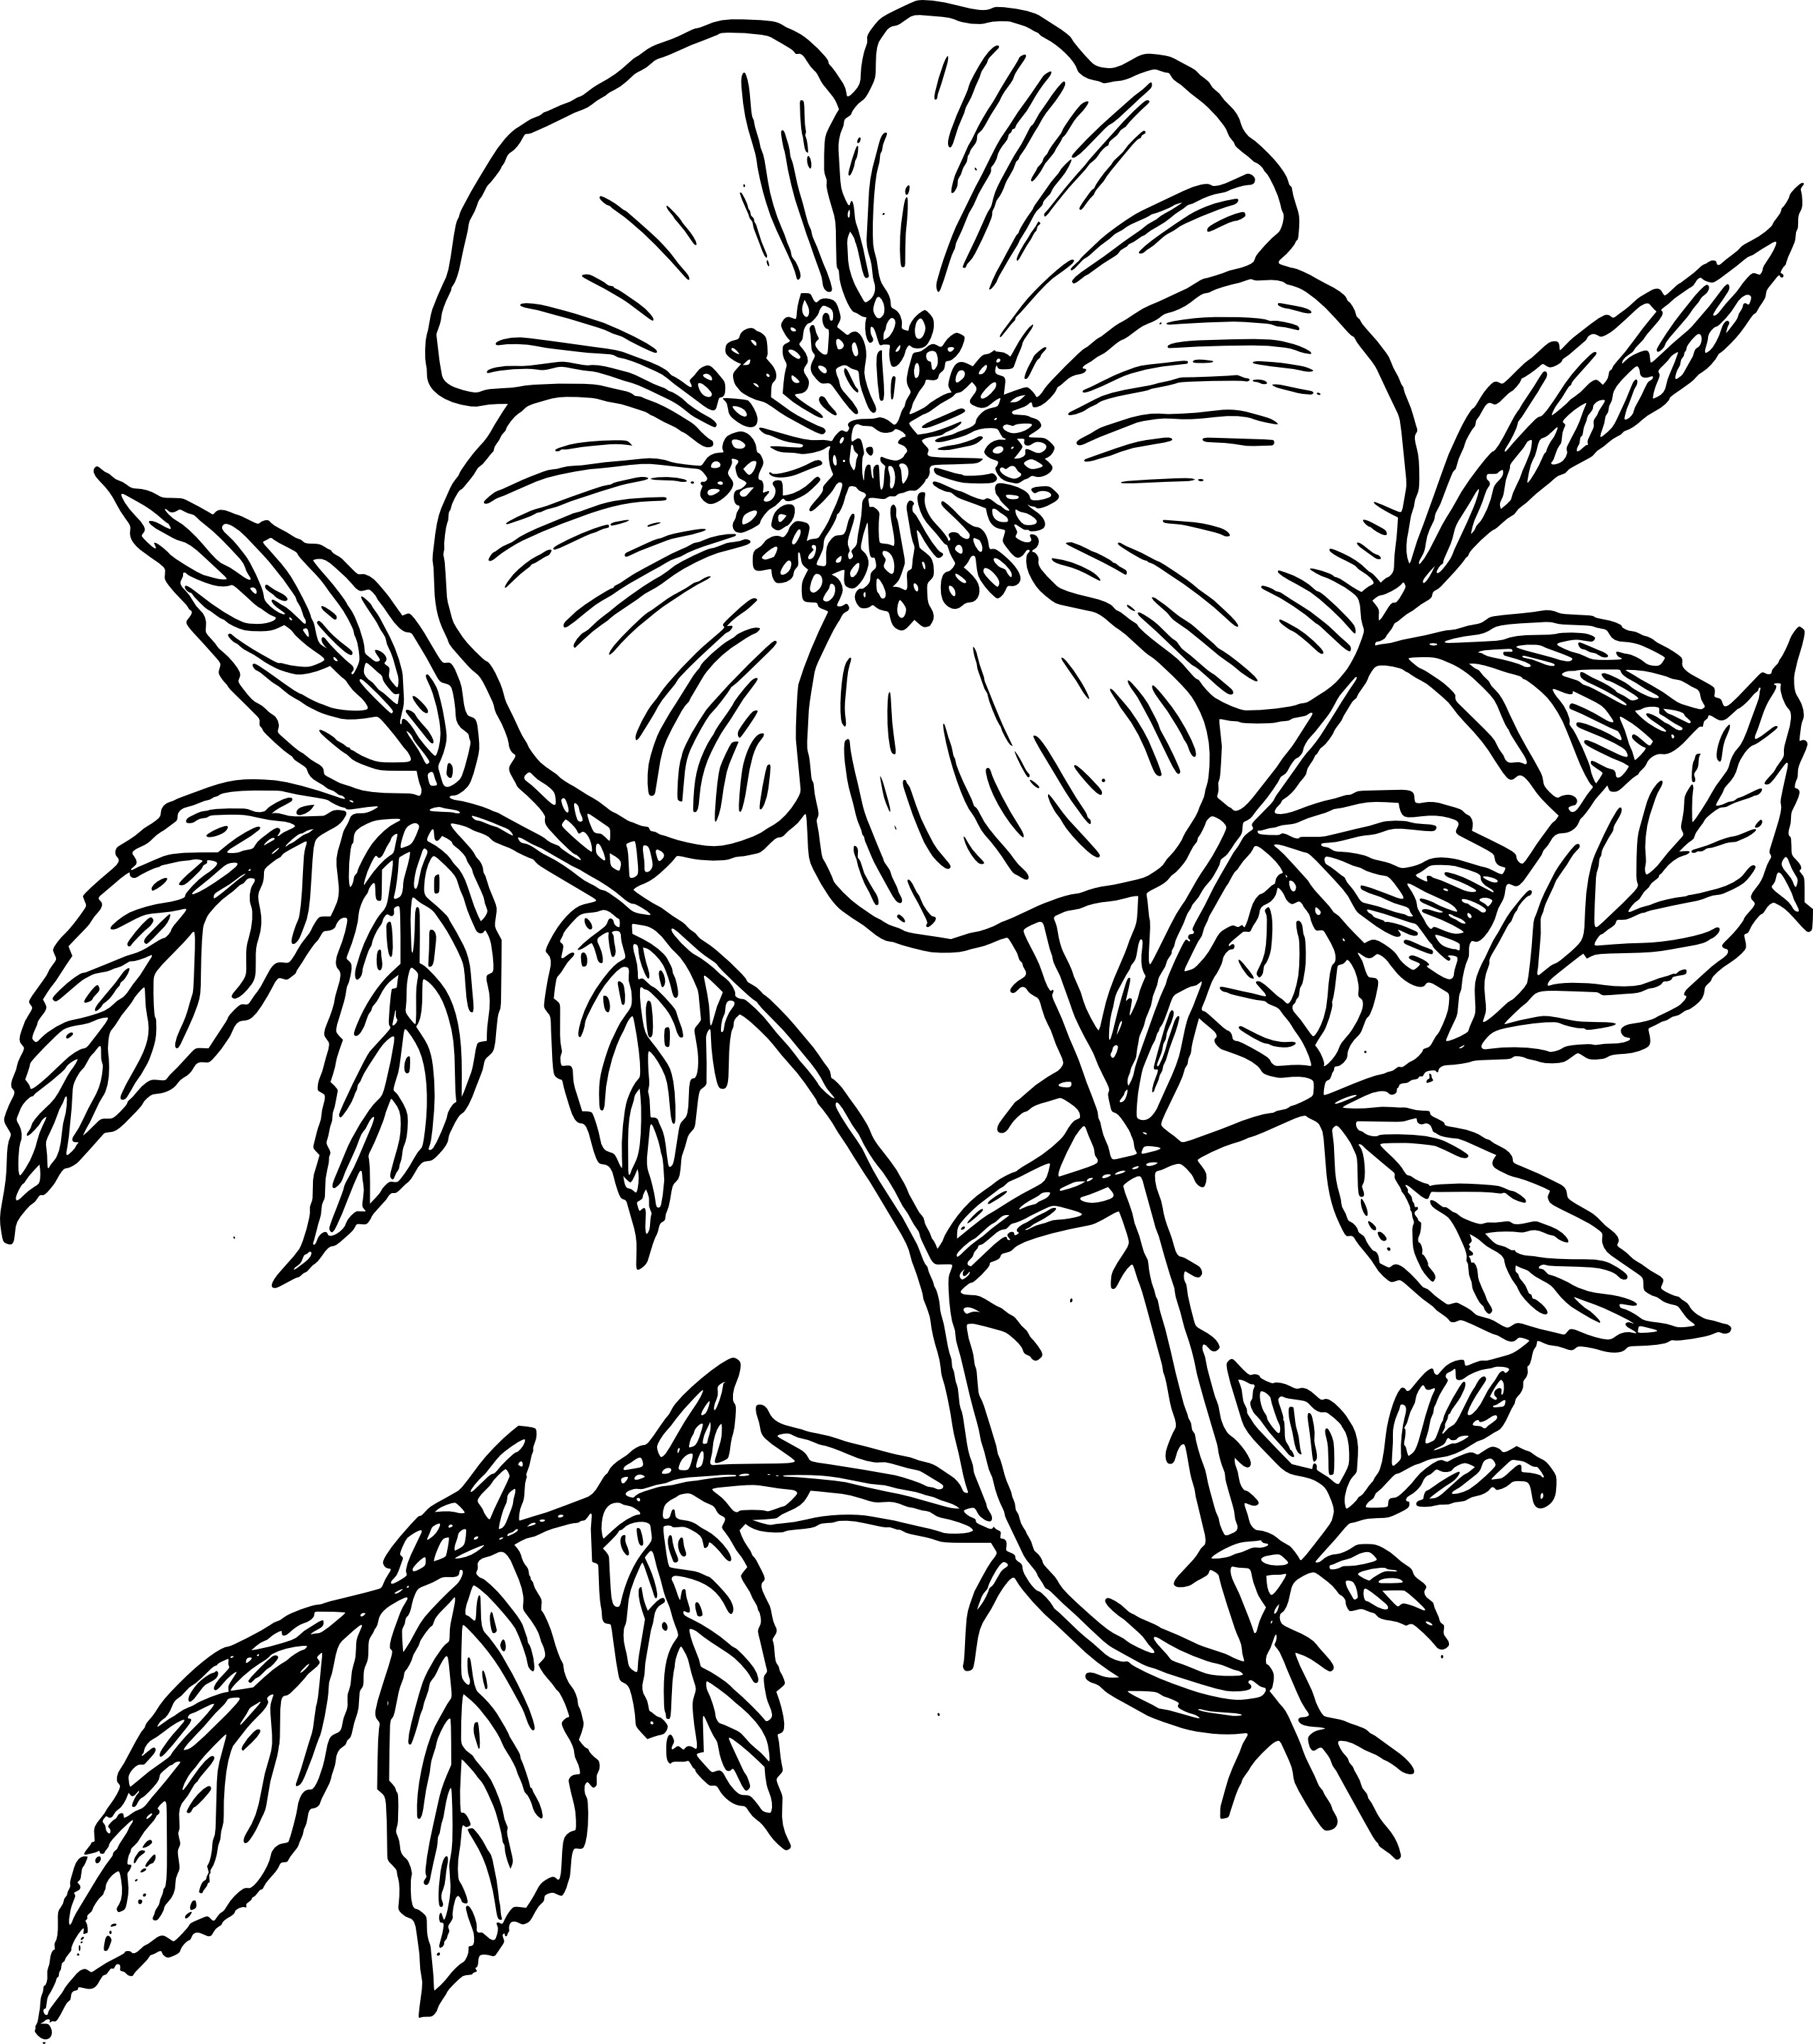 Flower Line Drawing Vector